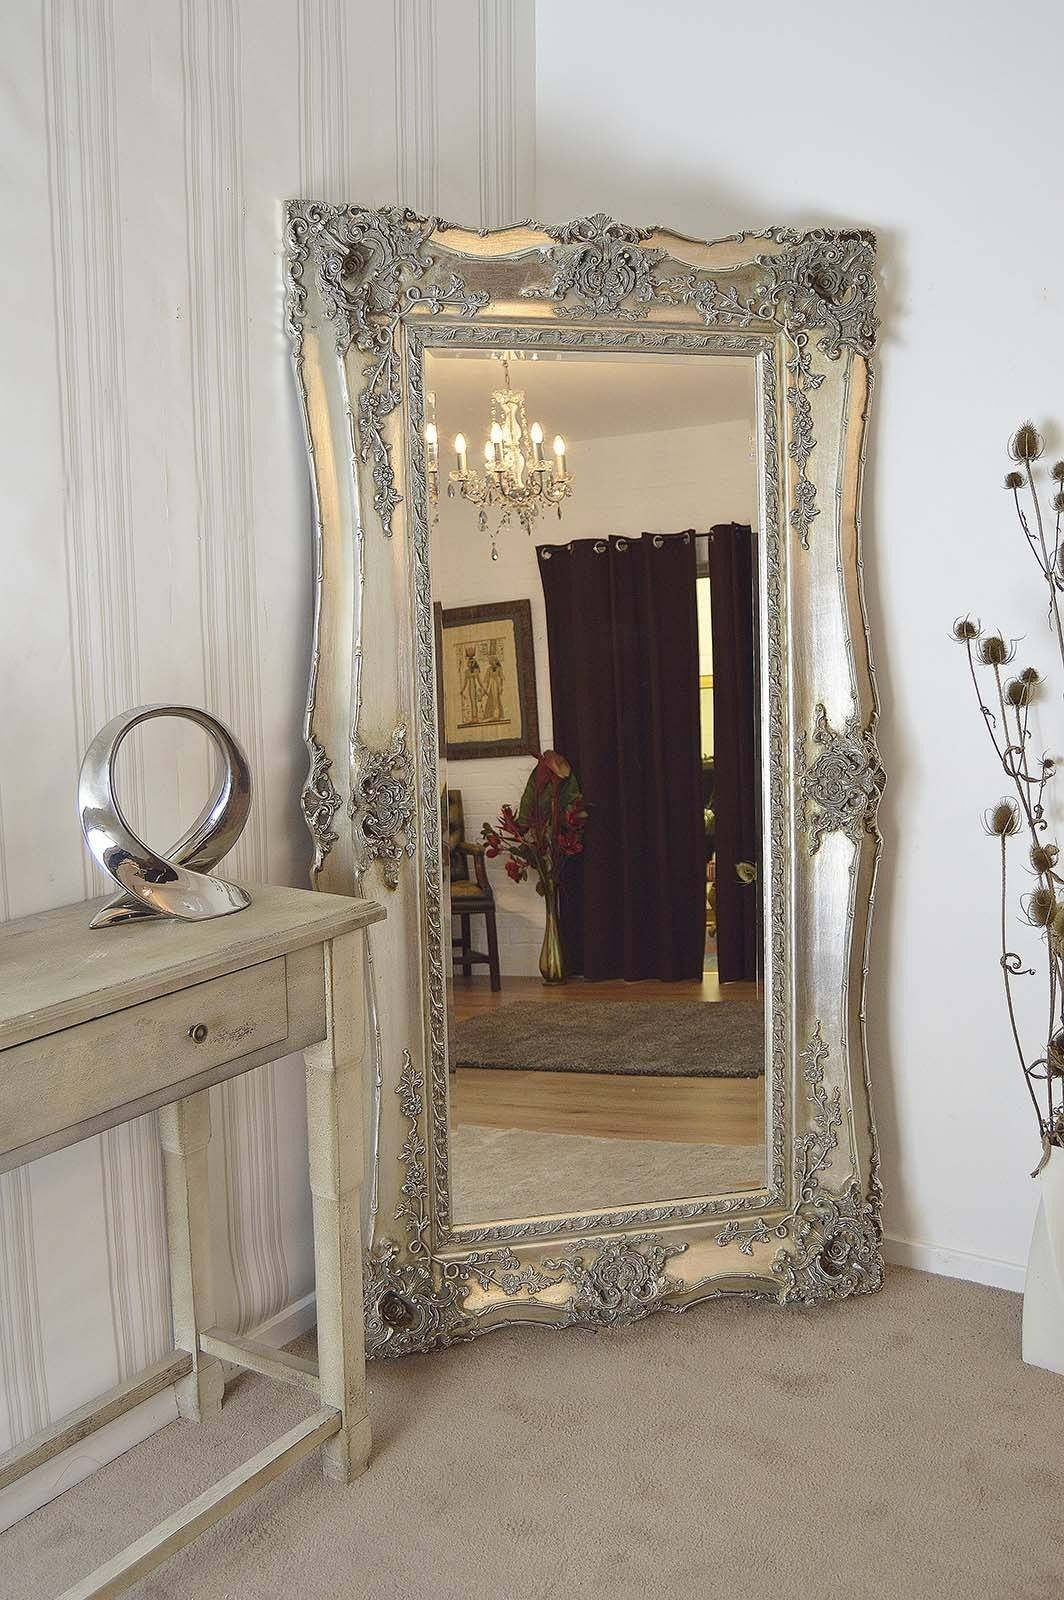 Extra Large Mirrors - 10 Tips For Choosing | Inovodecor for Massive Mirrors (Image 14 of 25)